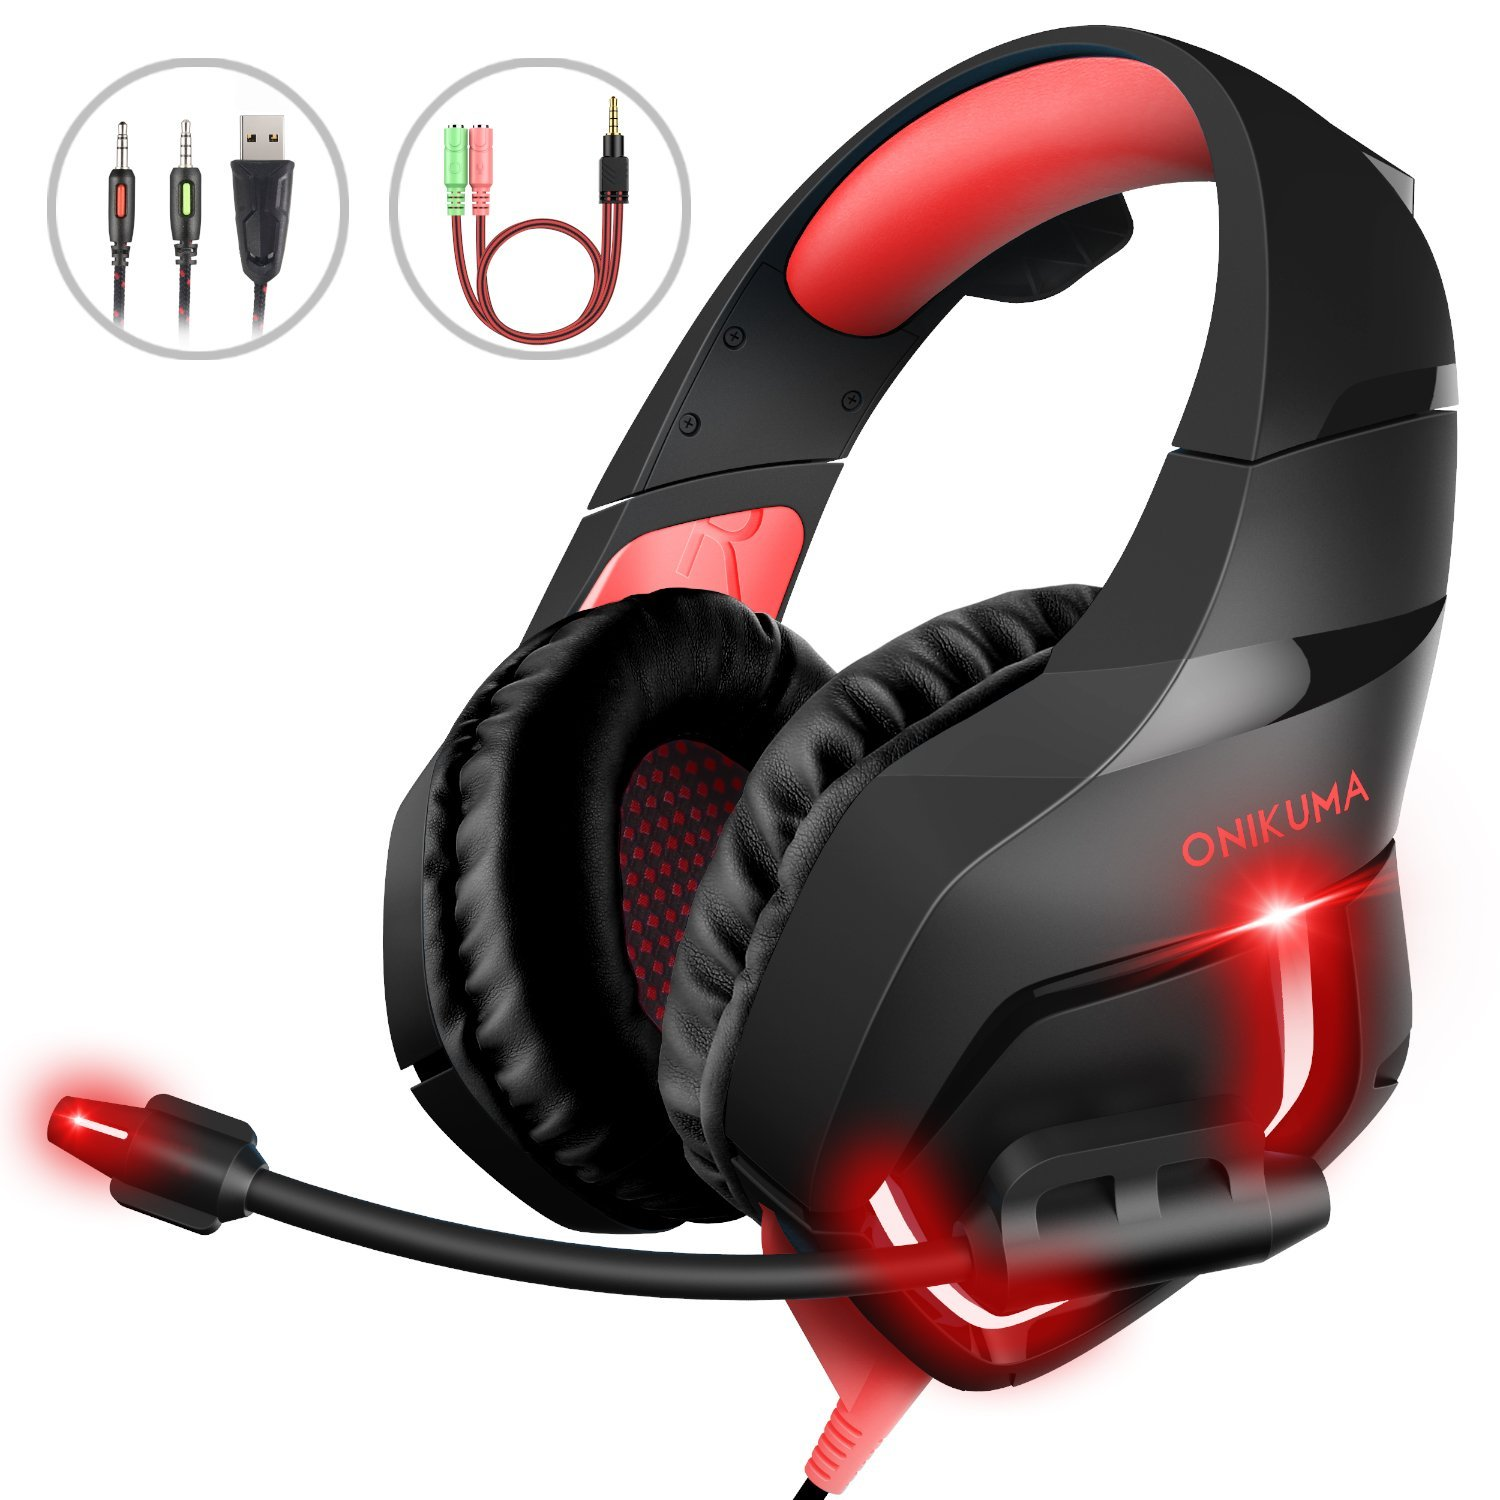 Headset Kopfhöer Gaming MillSO amazon